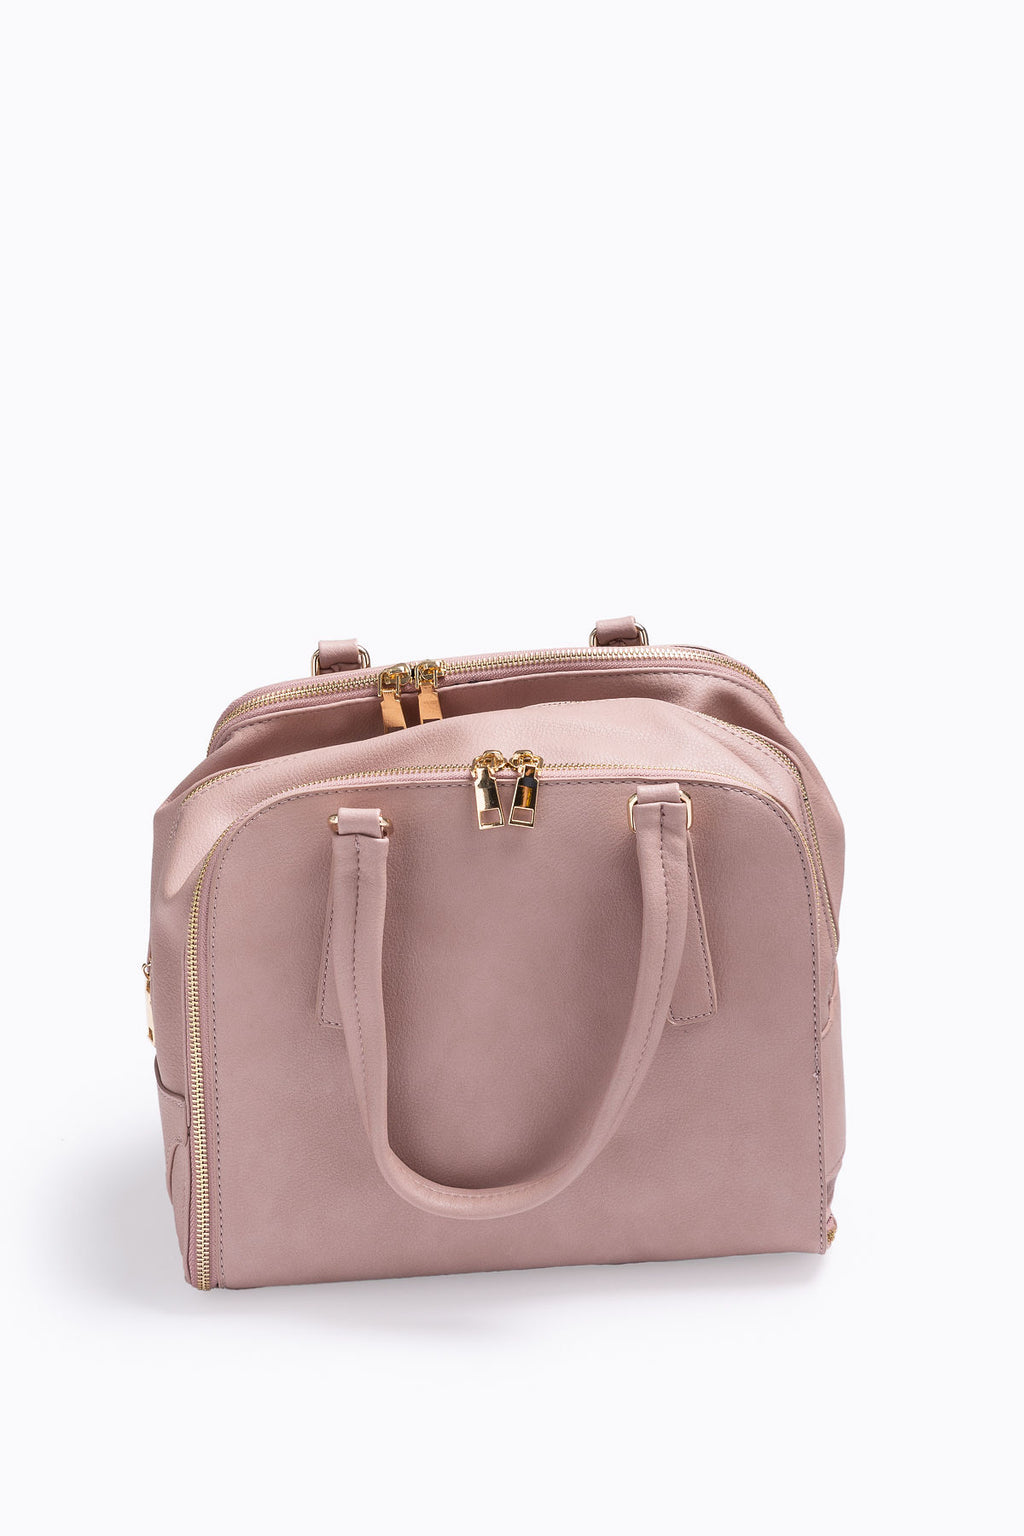 The Adriana Expandable Tote in Blush